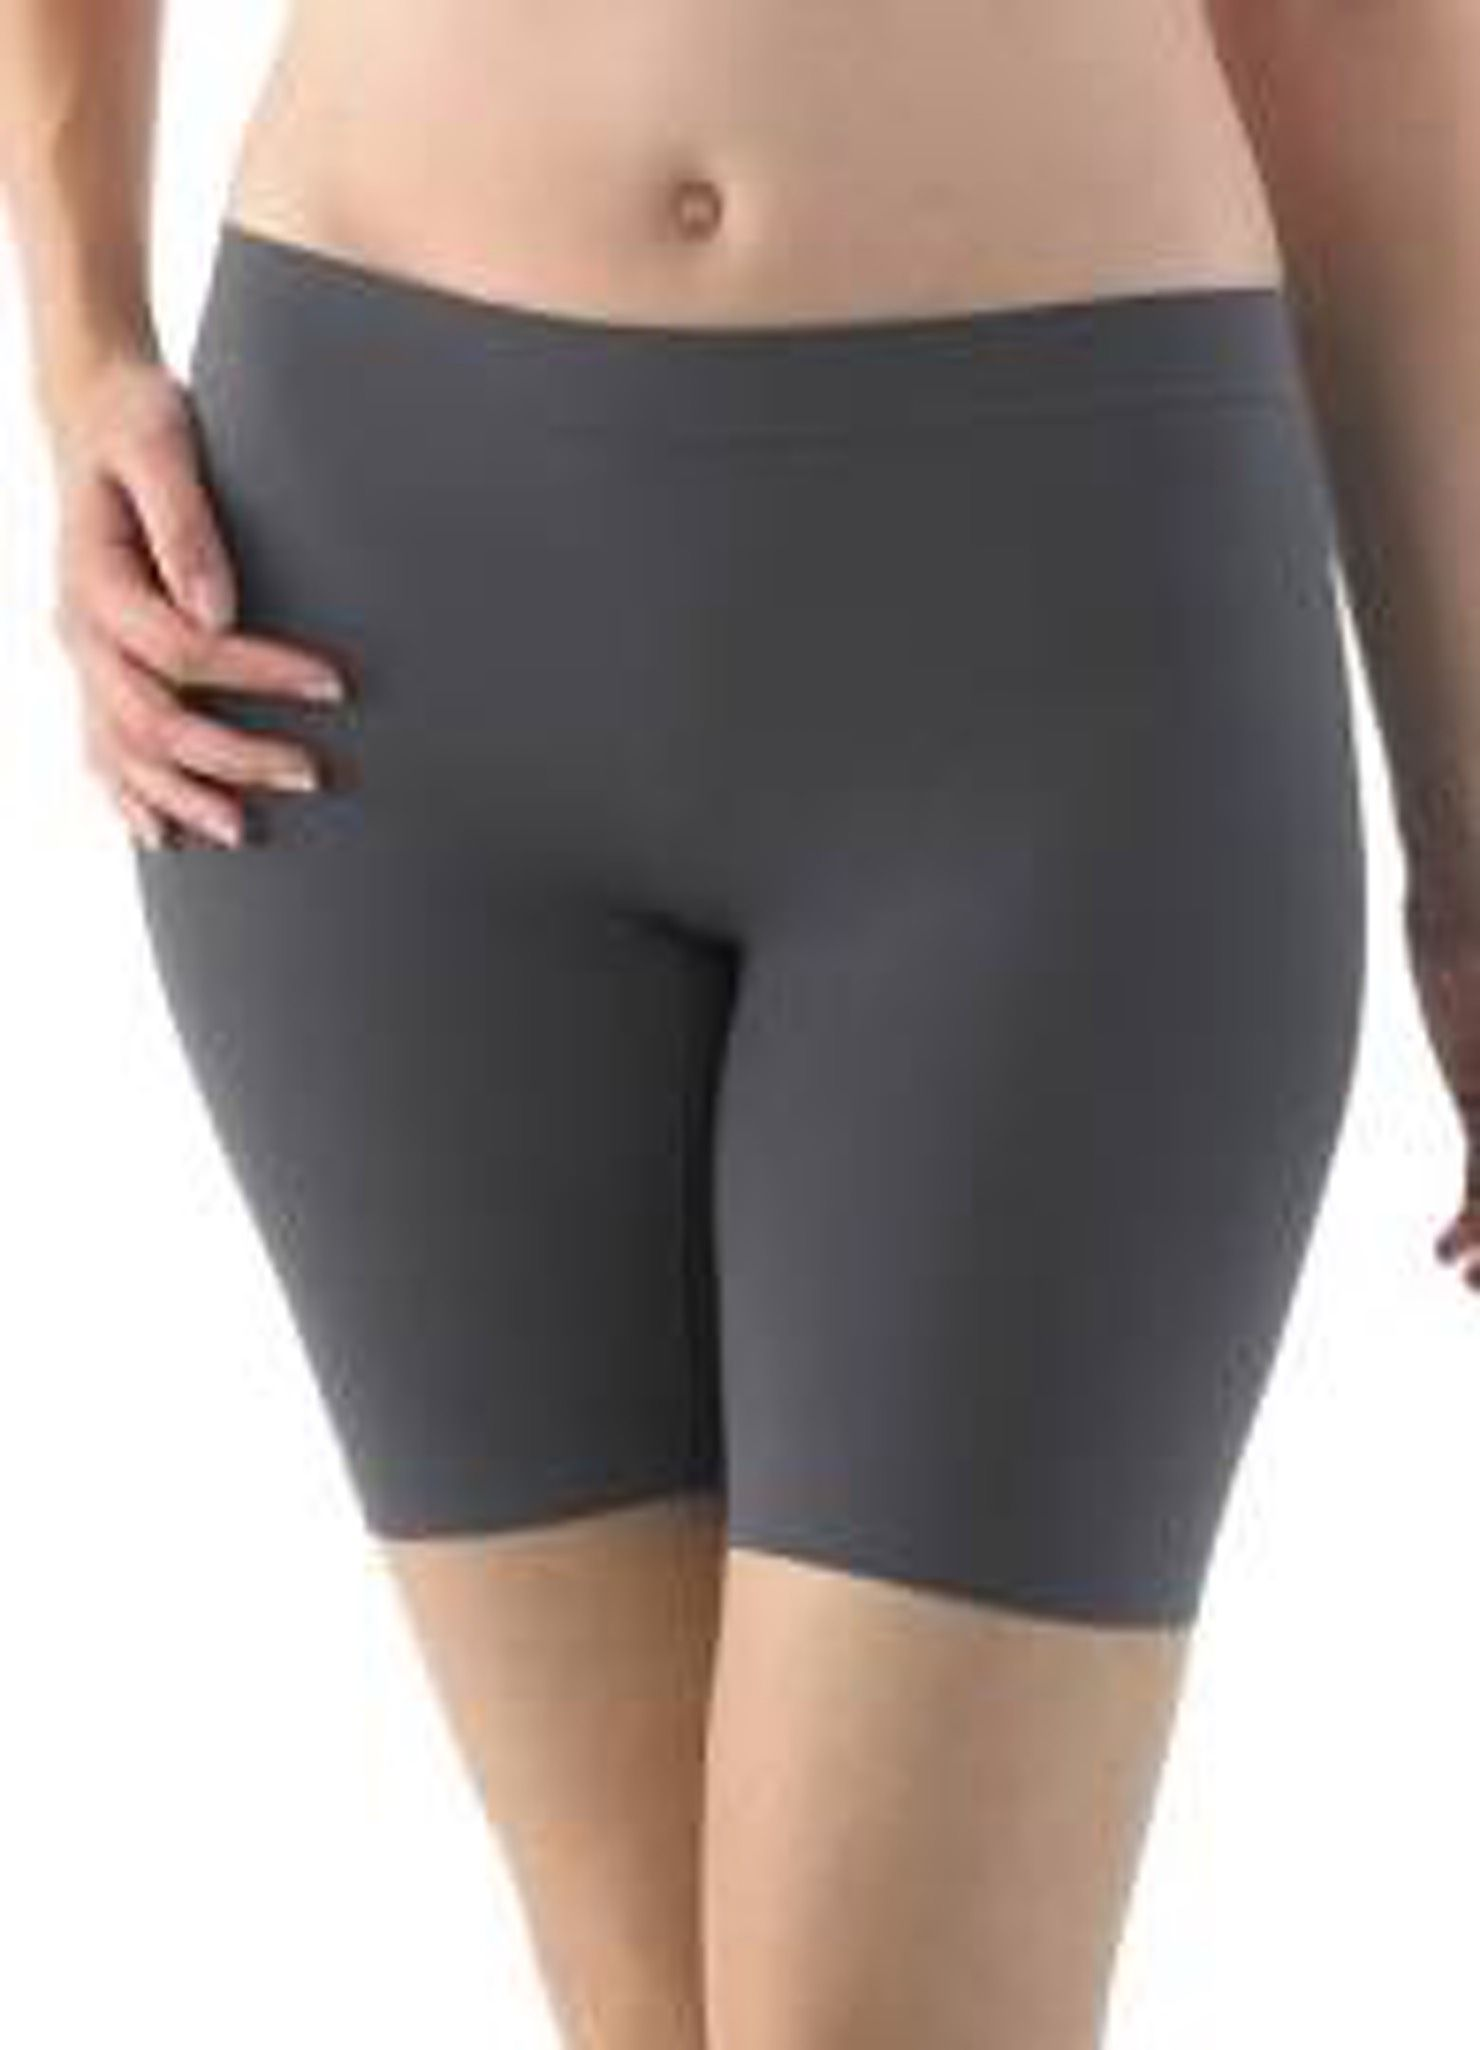 d3f99550c2f 7 Ways To Prevent Thigh Chafing In Dresses